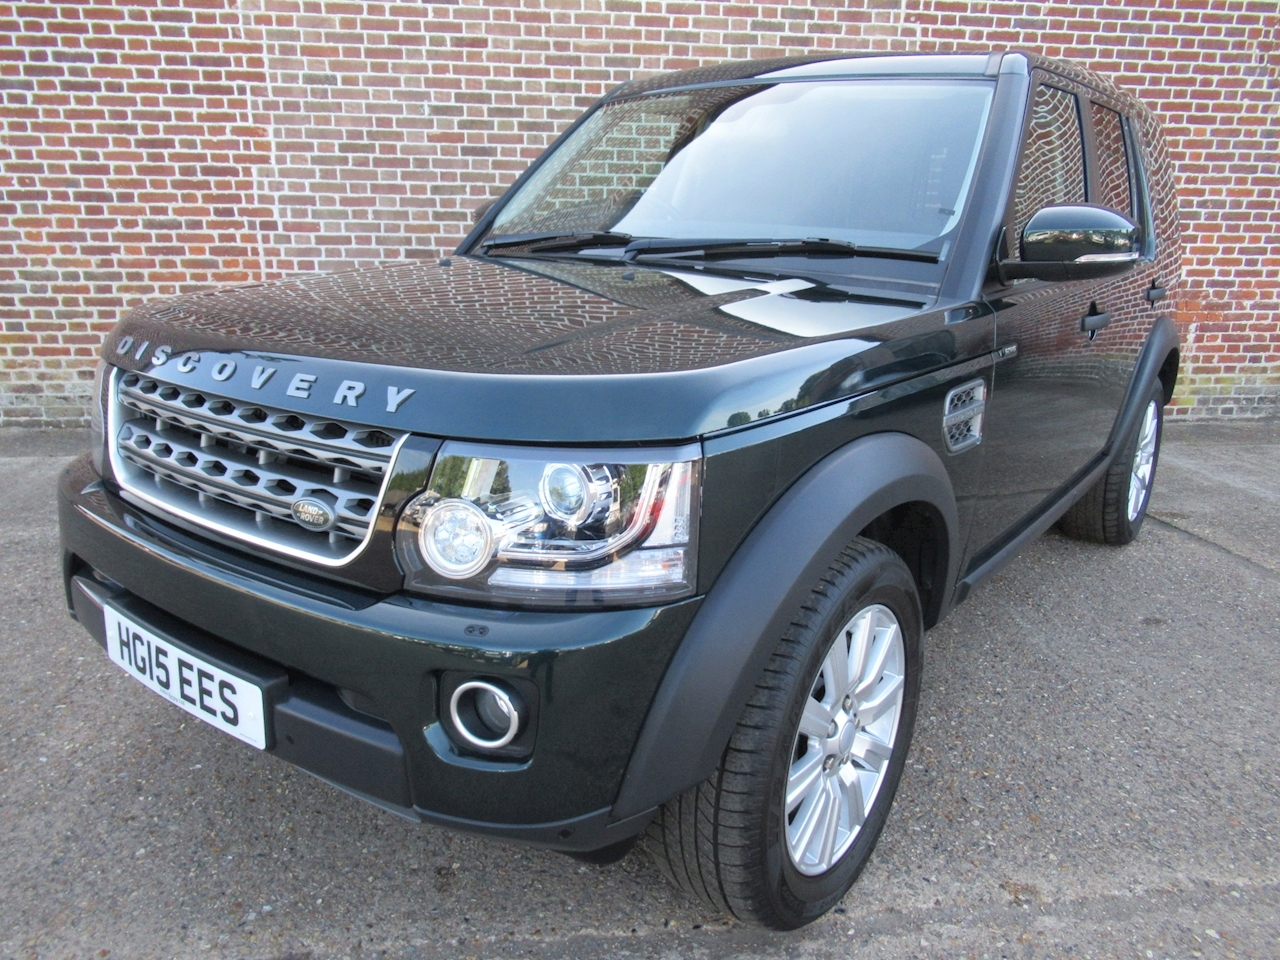 Land Rover Discovery Sdv6 Commercial Xs Light 4X4 Utility 3.0 Automatic Diesel